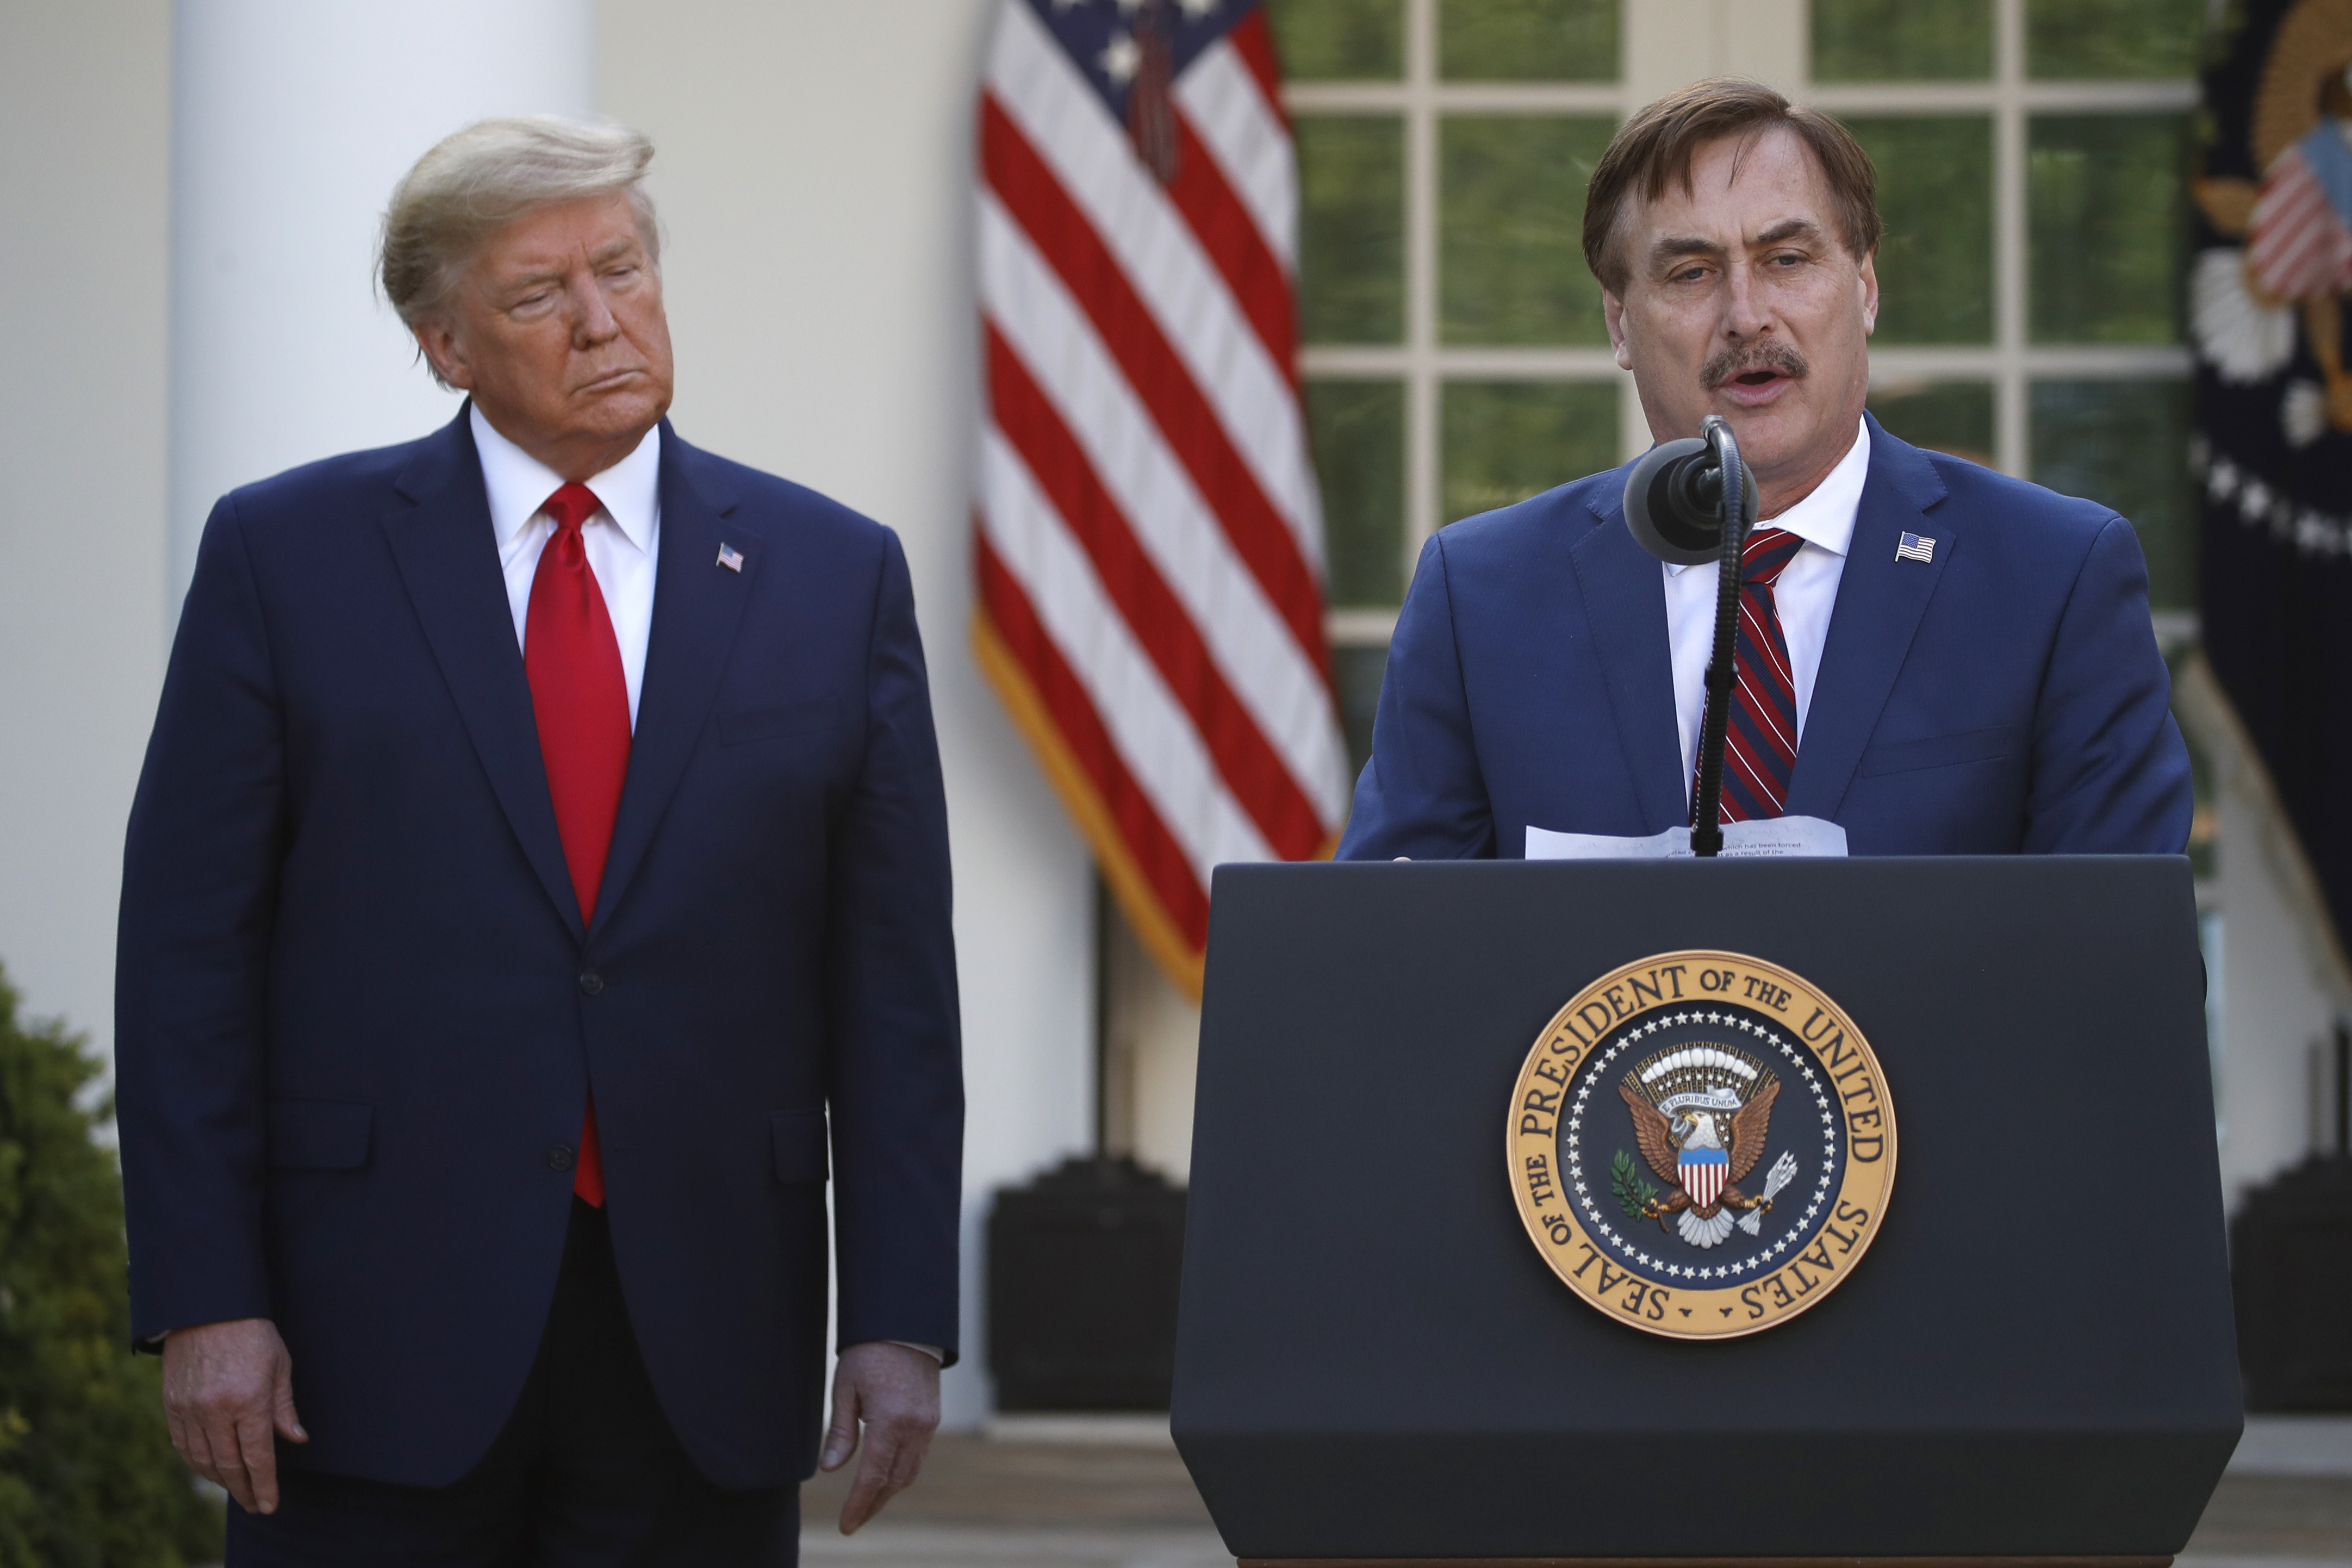 Twitter Permanently Bans My Pillow CEO Mike Lindell